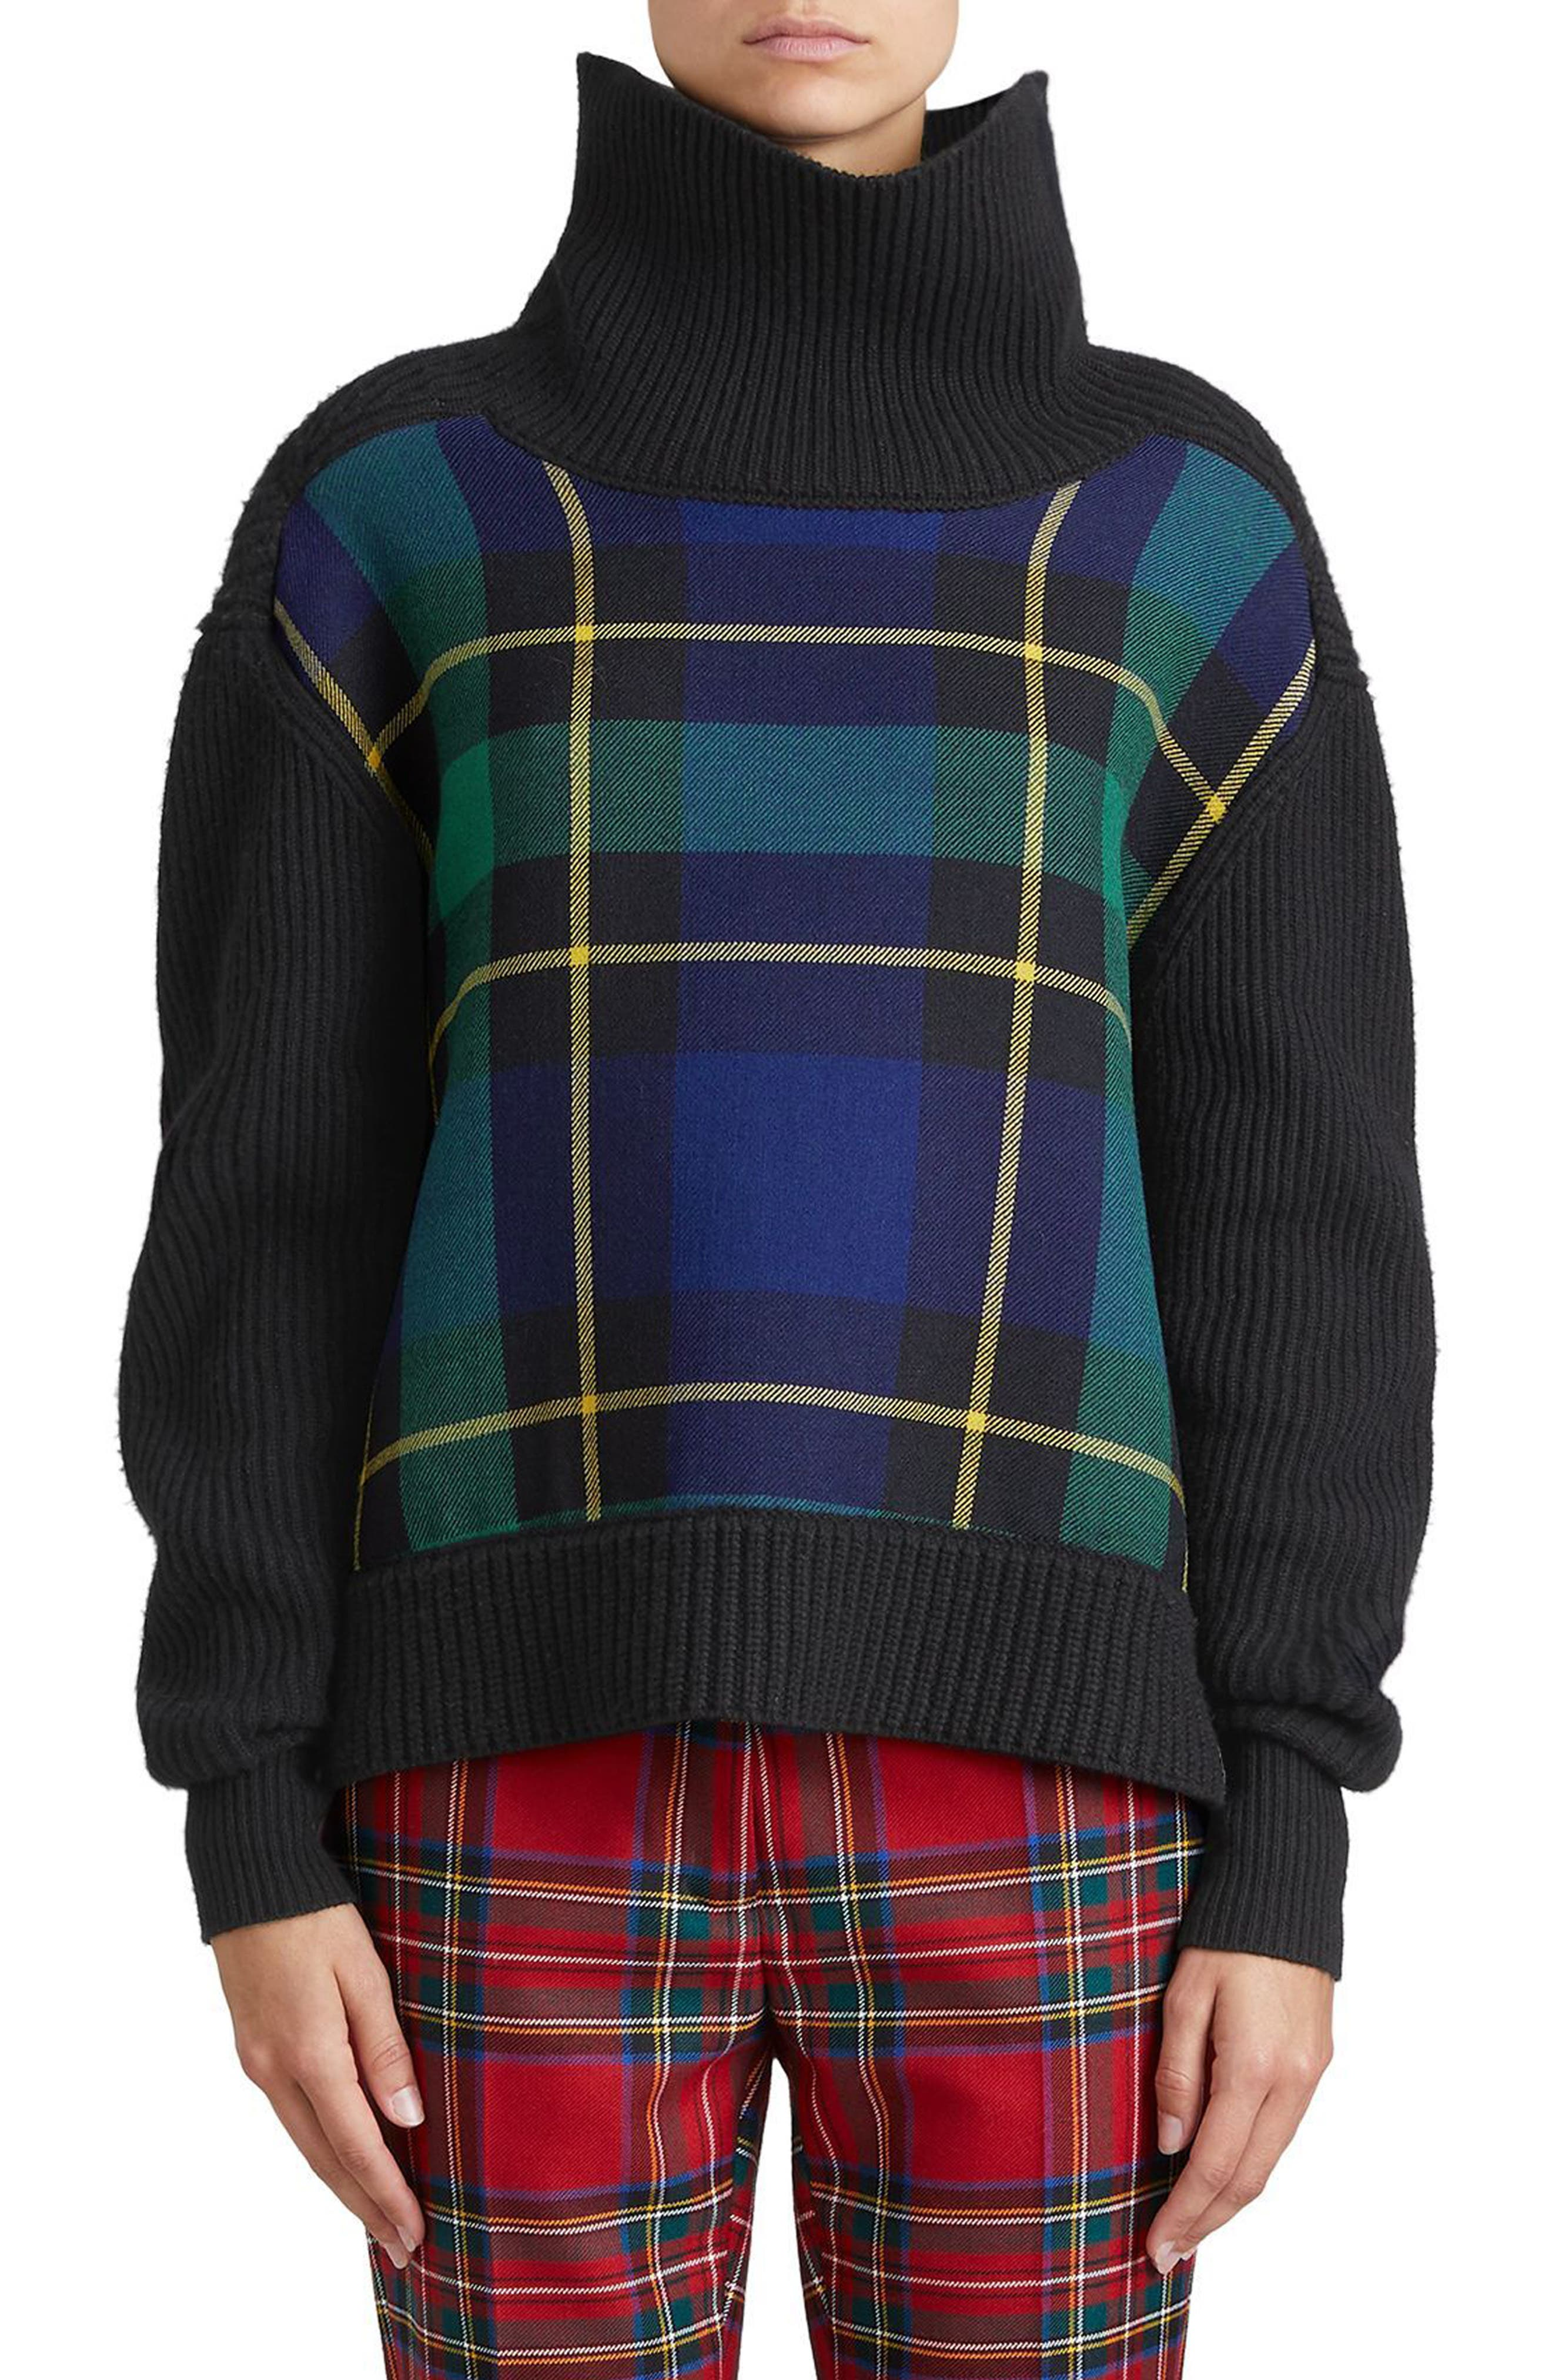 Fiora Check Wool & Cashmere Turtleneck Sweater,                             Main thumbnail 1, color,                             001